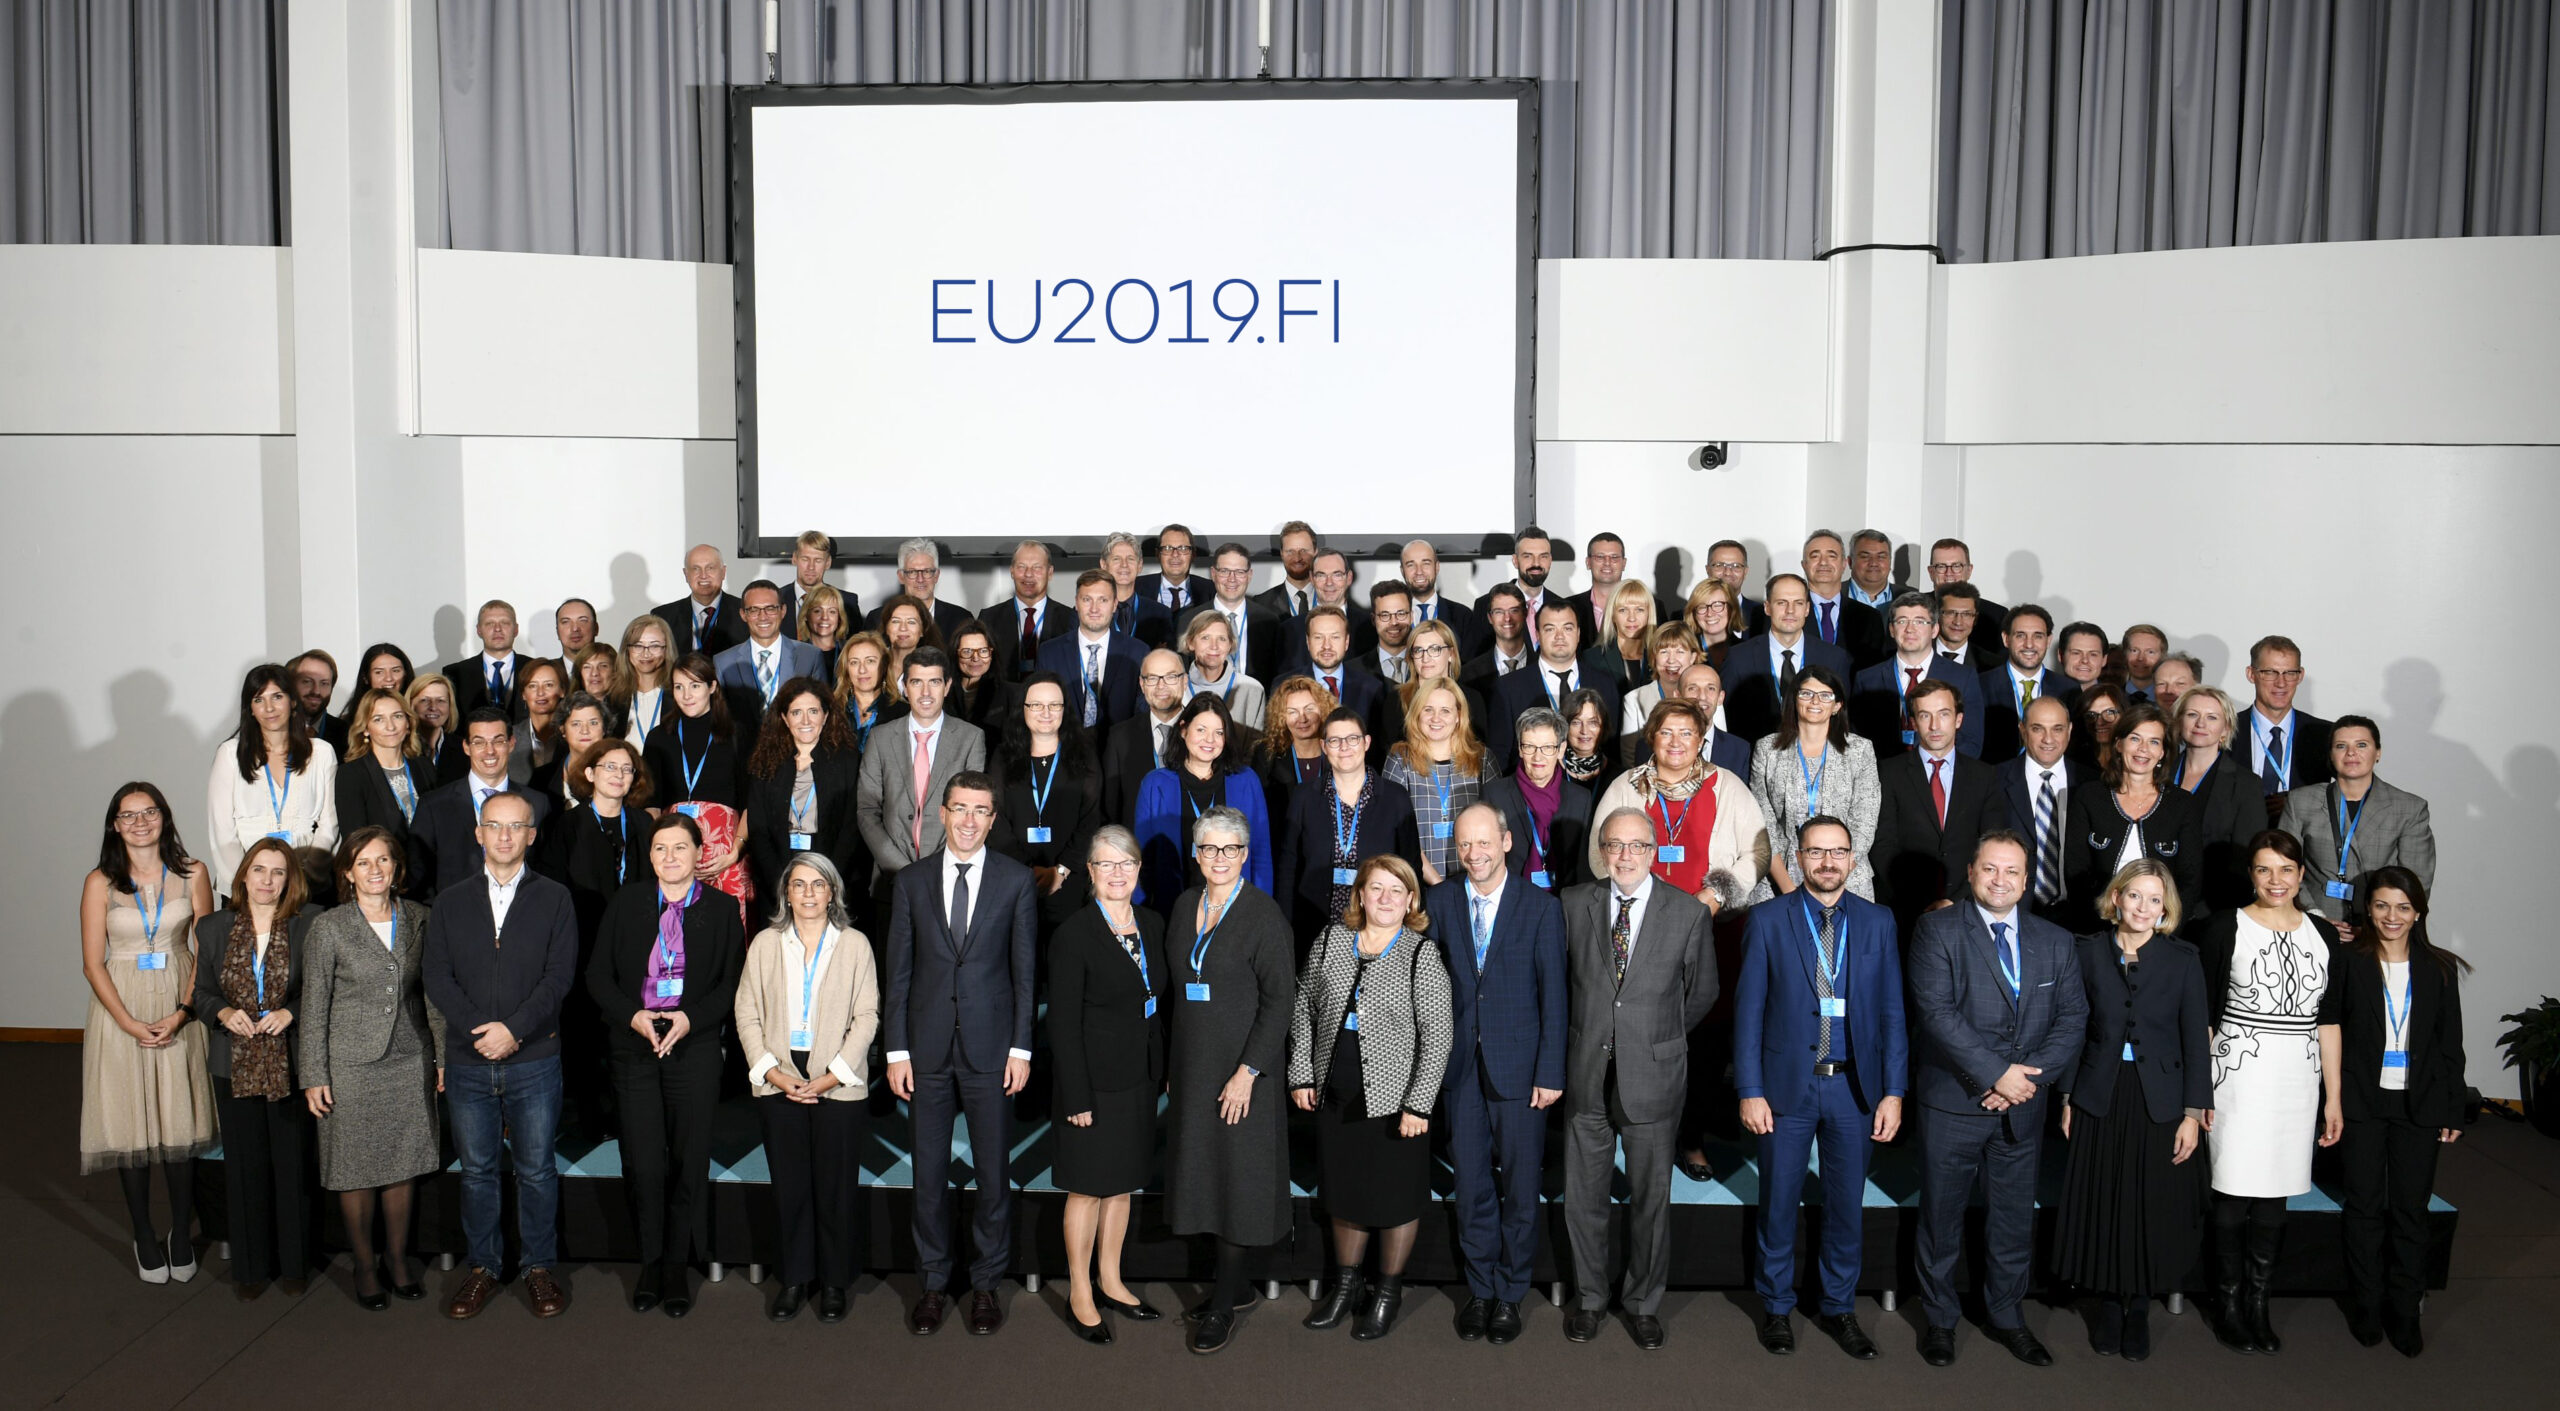 Family photo of EU Directors-General responsible for Cohesion Policy, Territorial Cohesion and Urban Matters in Helsinki, Finland on October 16, 2019.